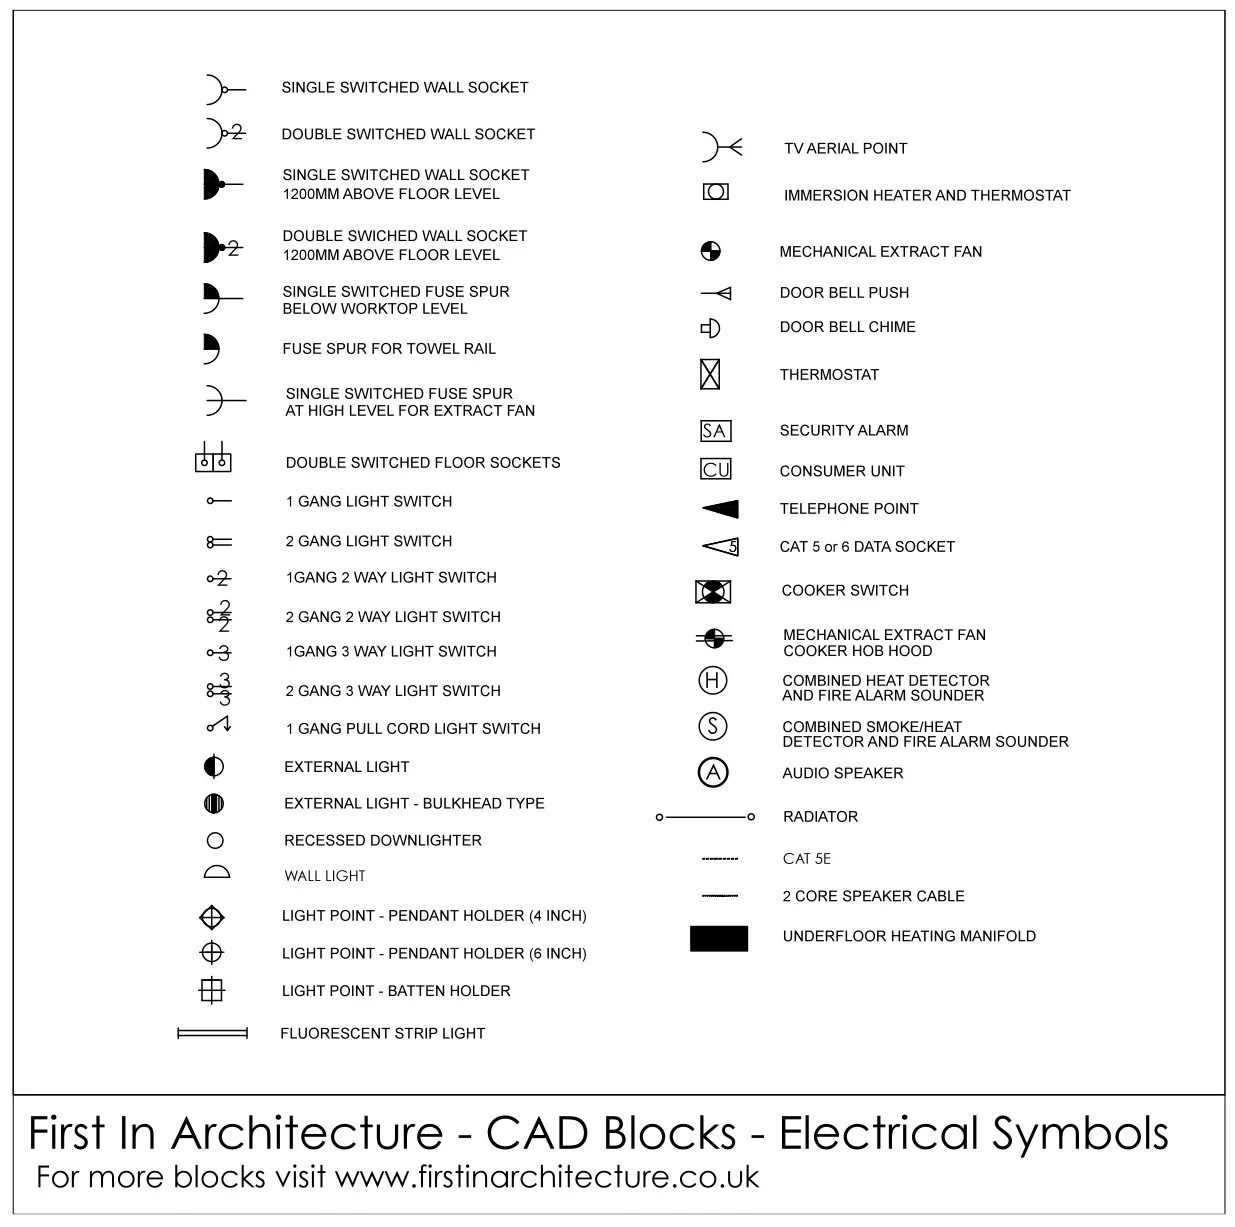 medium resolution of free cad blocks electrical symbols rh firstinarchitecture co uk electrical wiring diagrams symbols chart blueprint diagram example